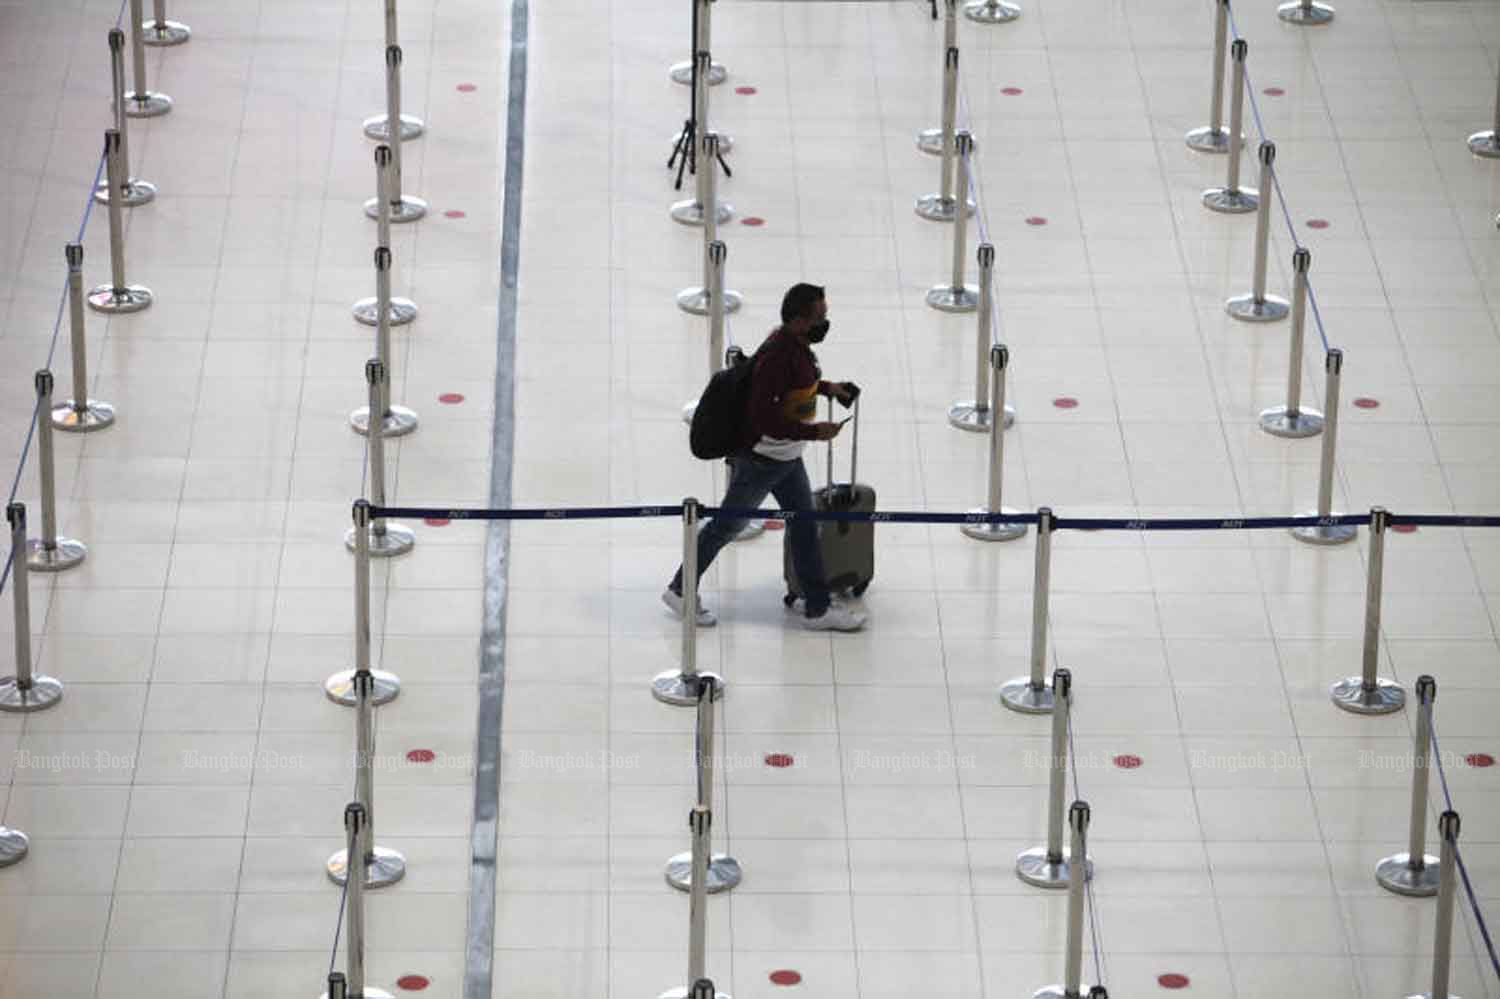 A passenger is checking in for a flight at Suvarnabhumi airport in Samut Prakan province mid this month. (Photo by Wichan Charoenkiatpakul)